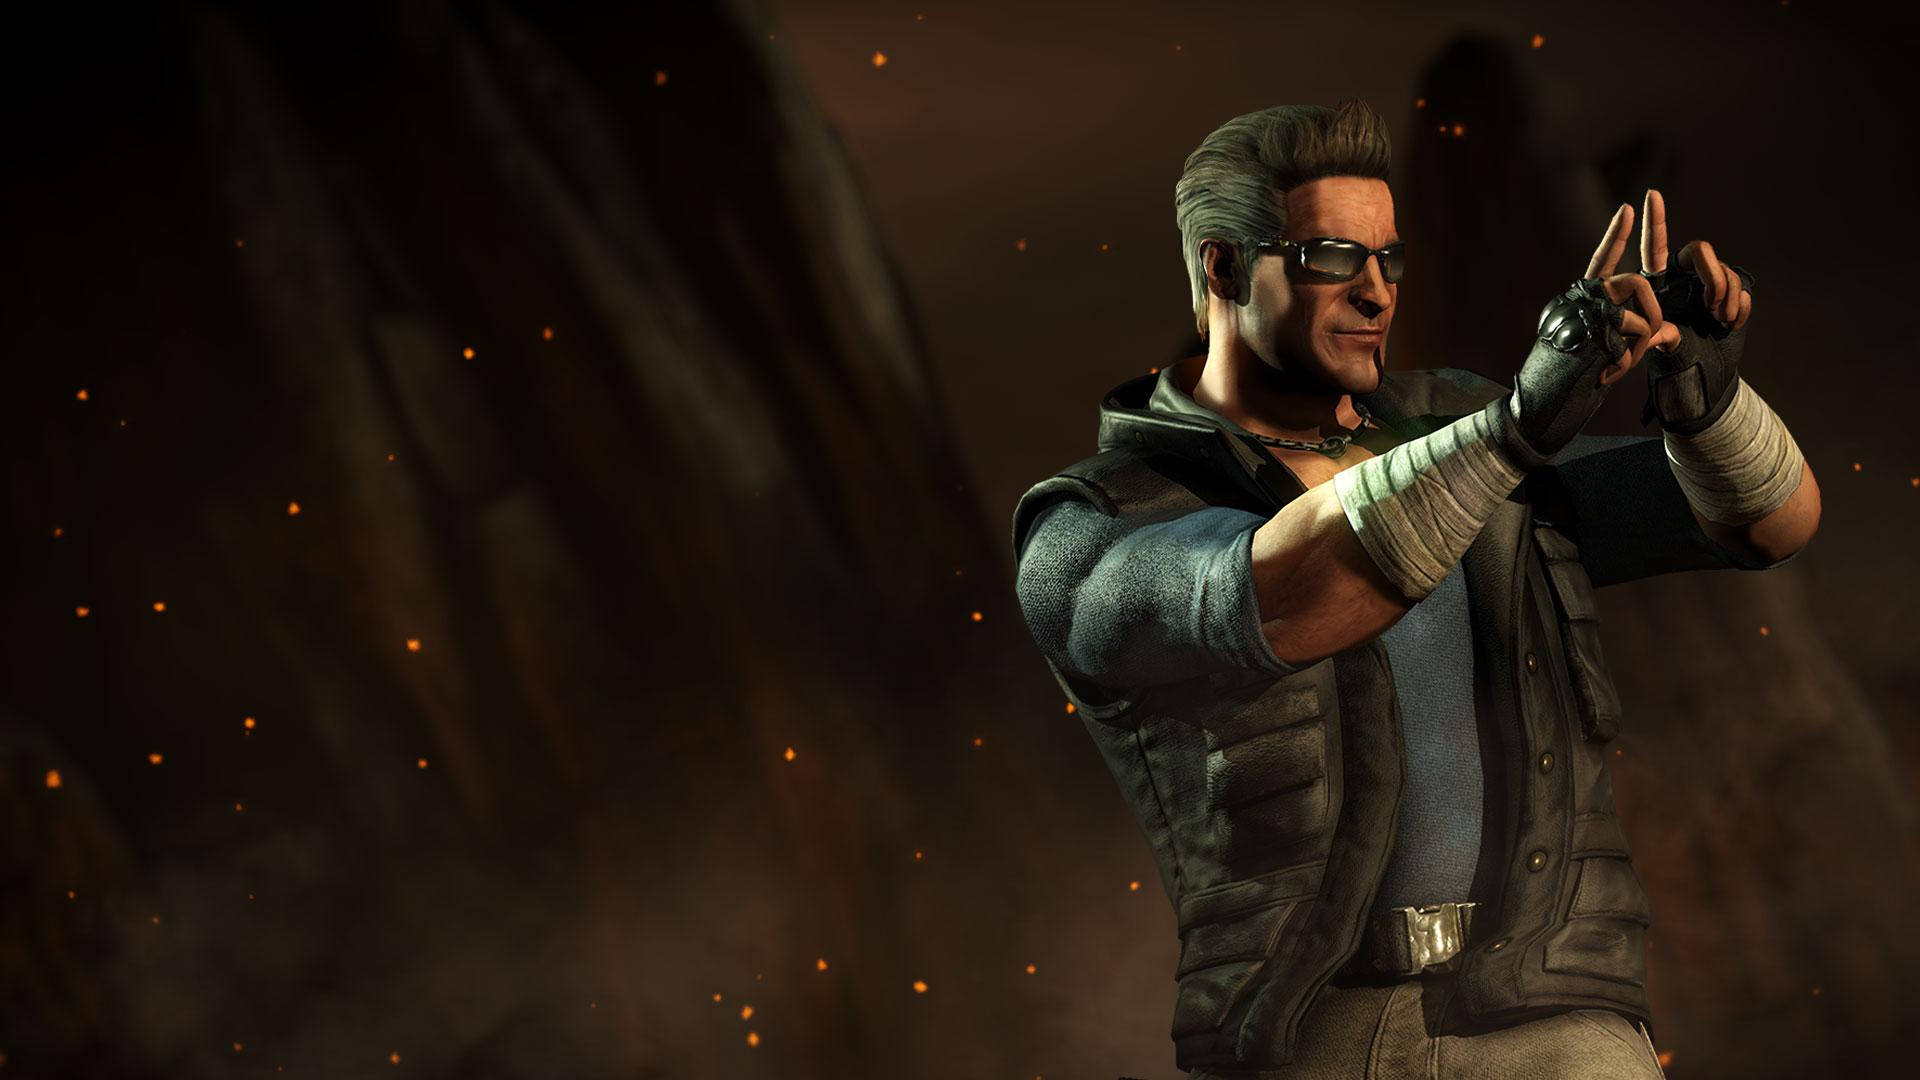 """Mortal Kombat X"" Cage Family Reveals the Whole Family"